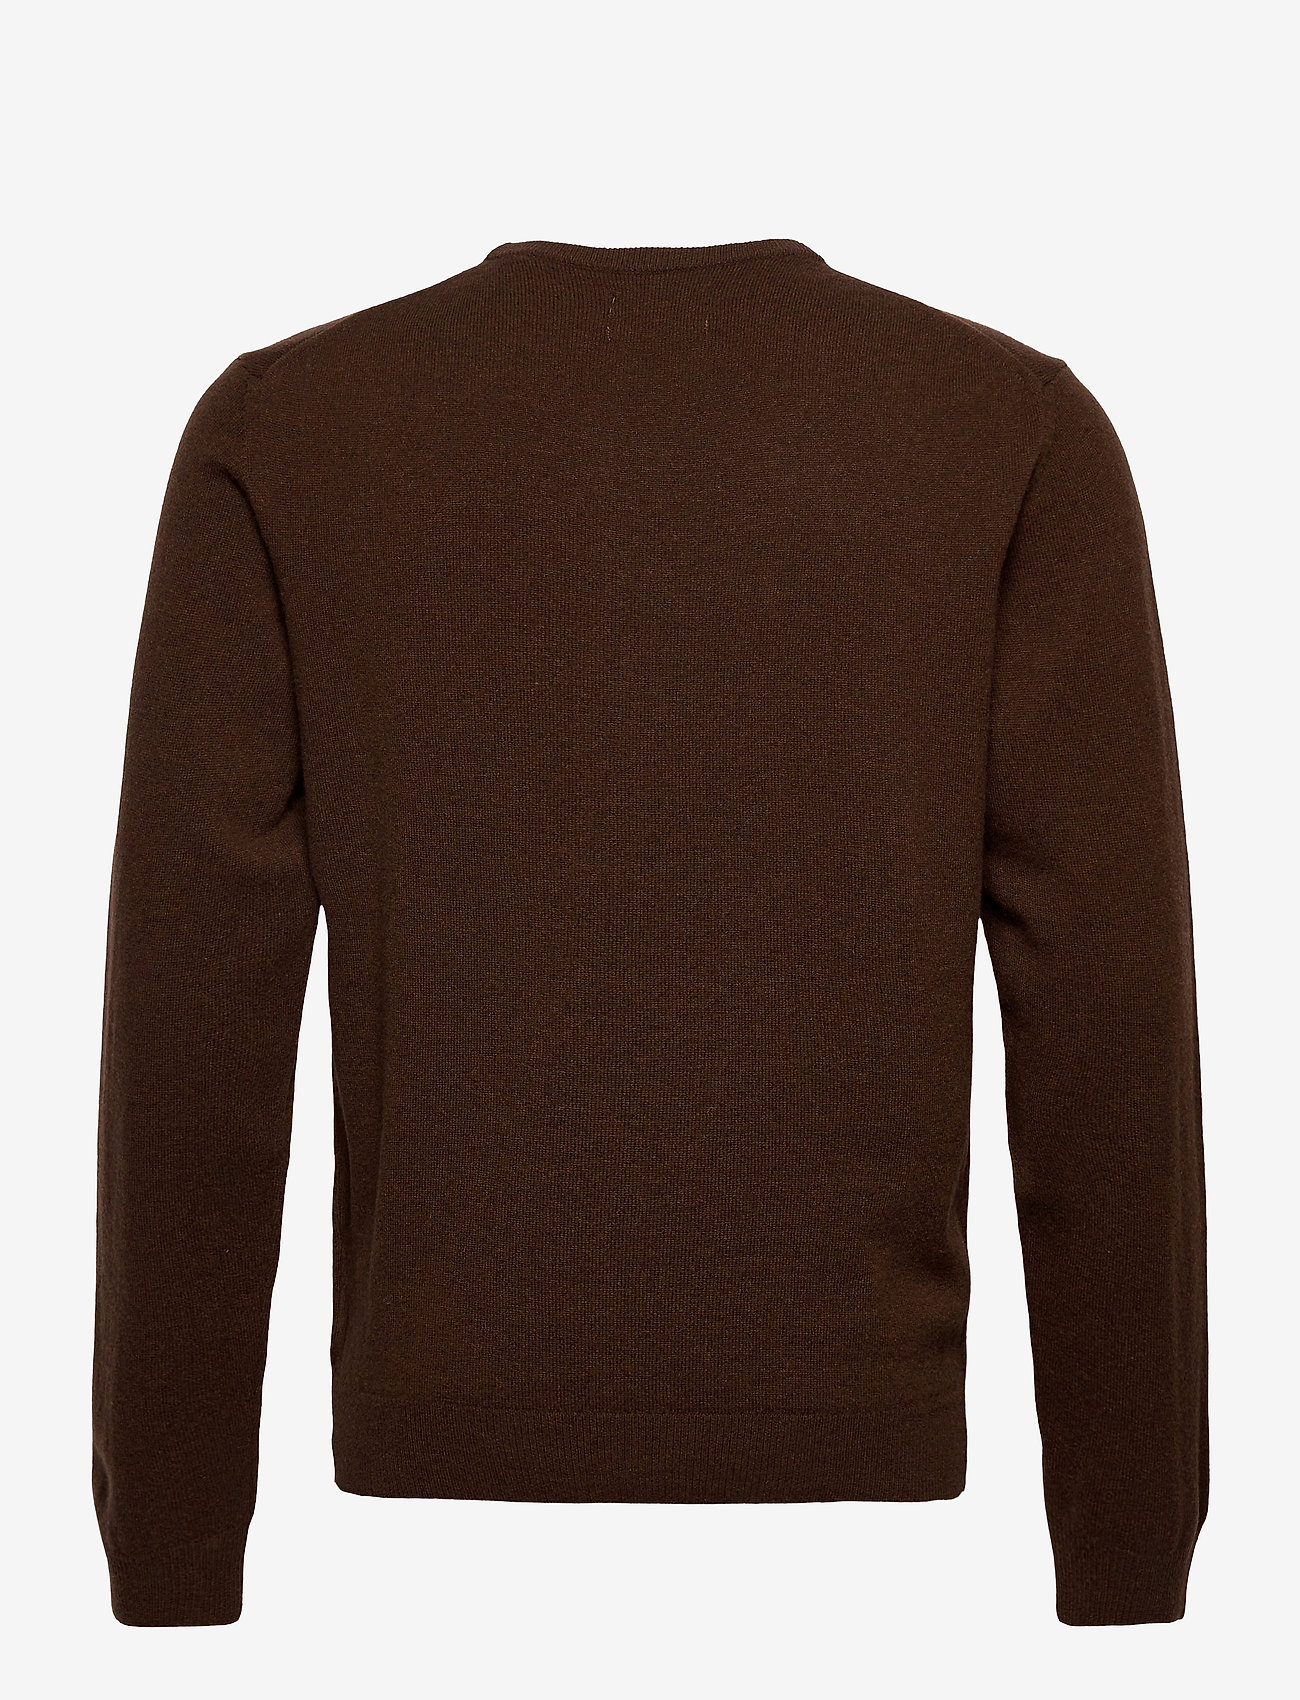 GANT - SUPERFINE LAMBSWOOL CREW - basic knitwear - dk brown melange - 1